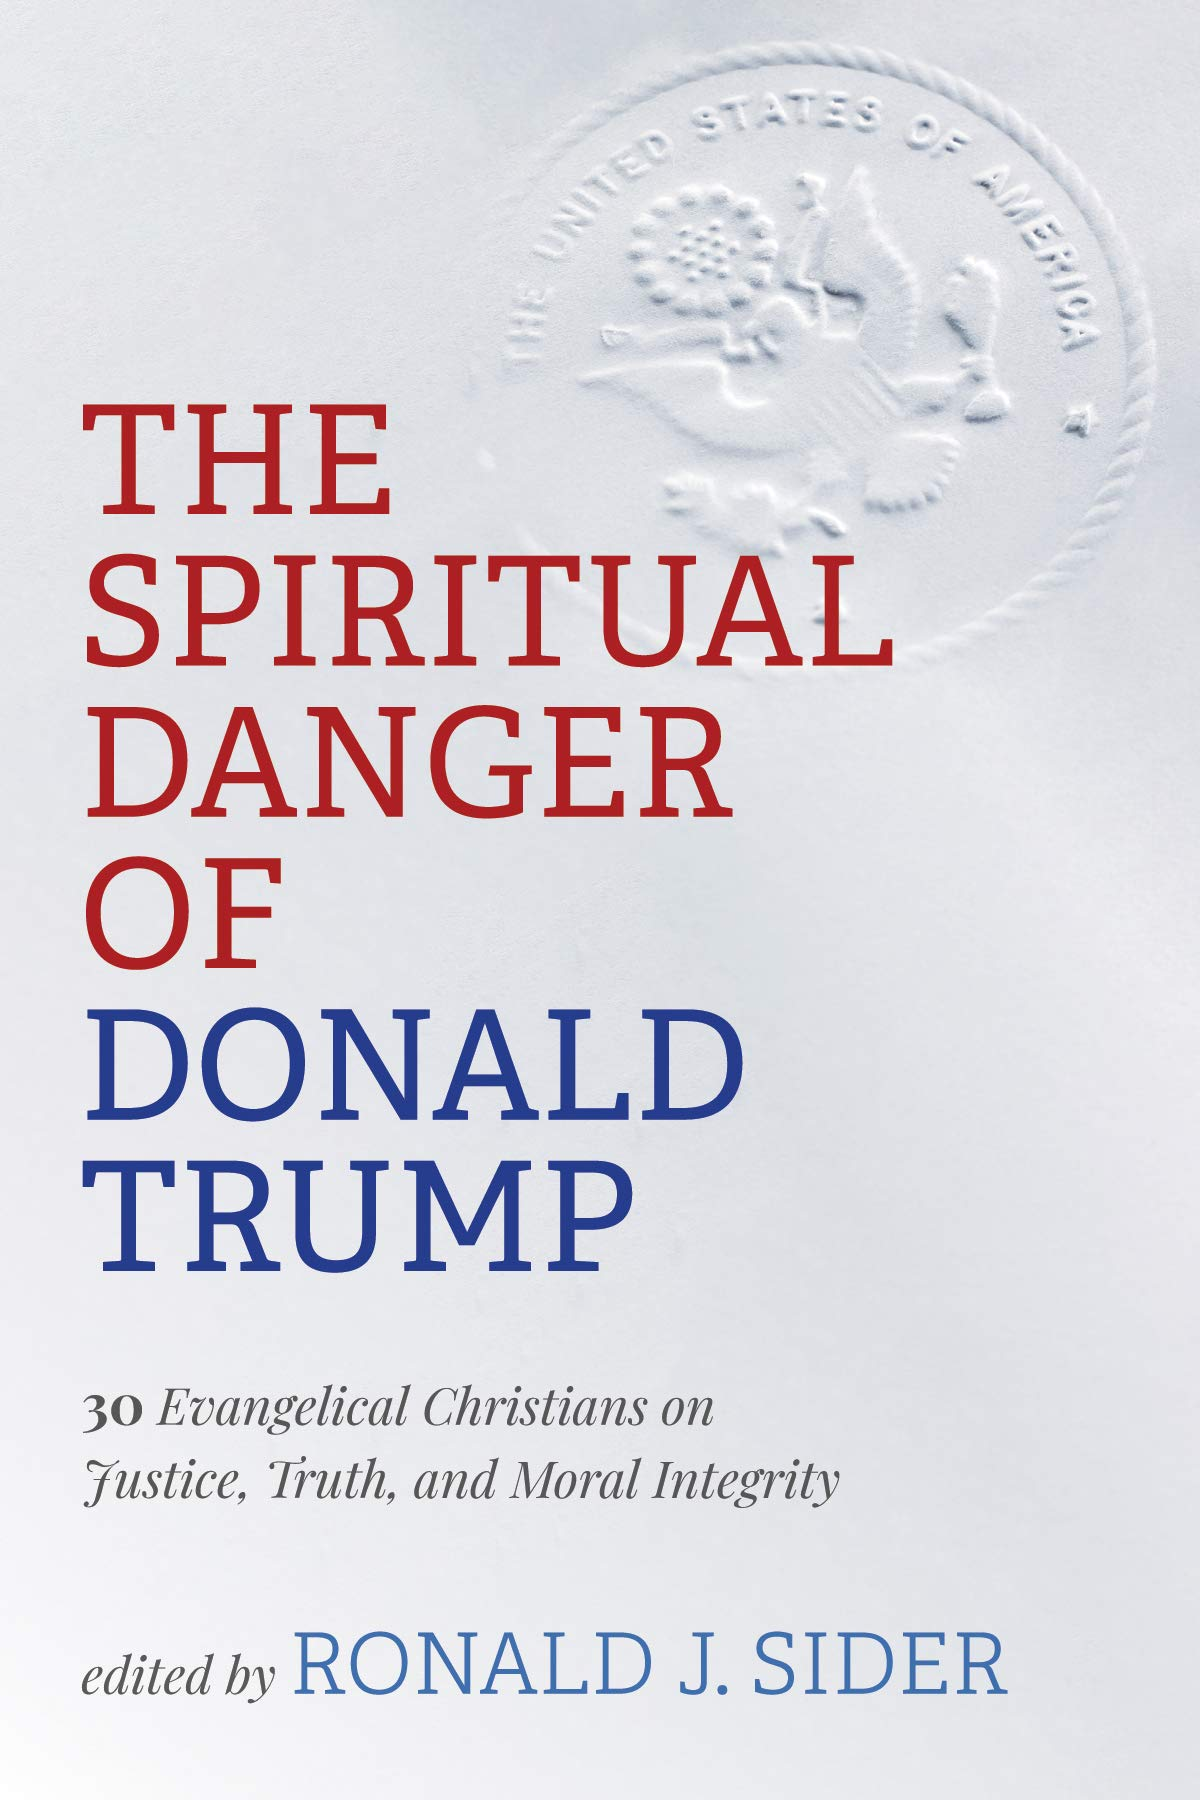 The Spiritual Danger of Donald Trump: 30 Evangelical Christians on Justice, Truth, and Moral Integrity